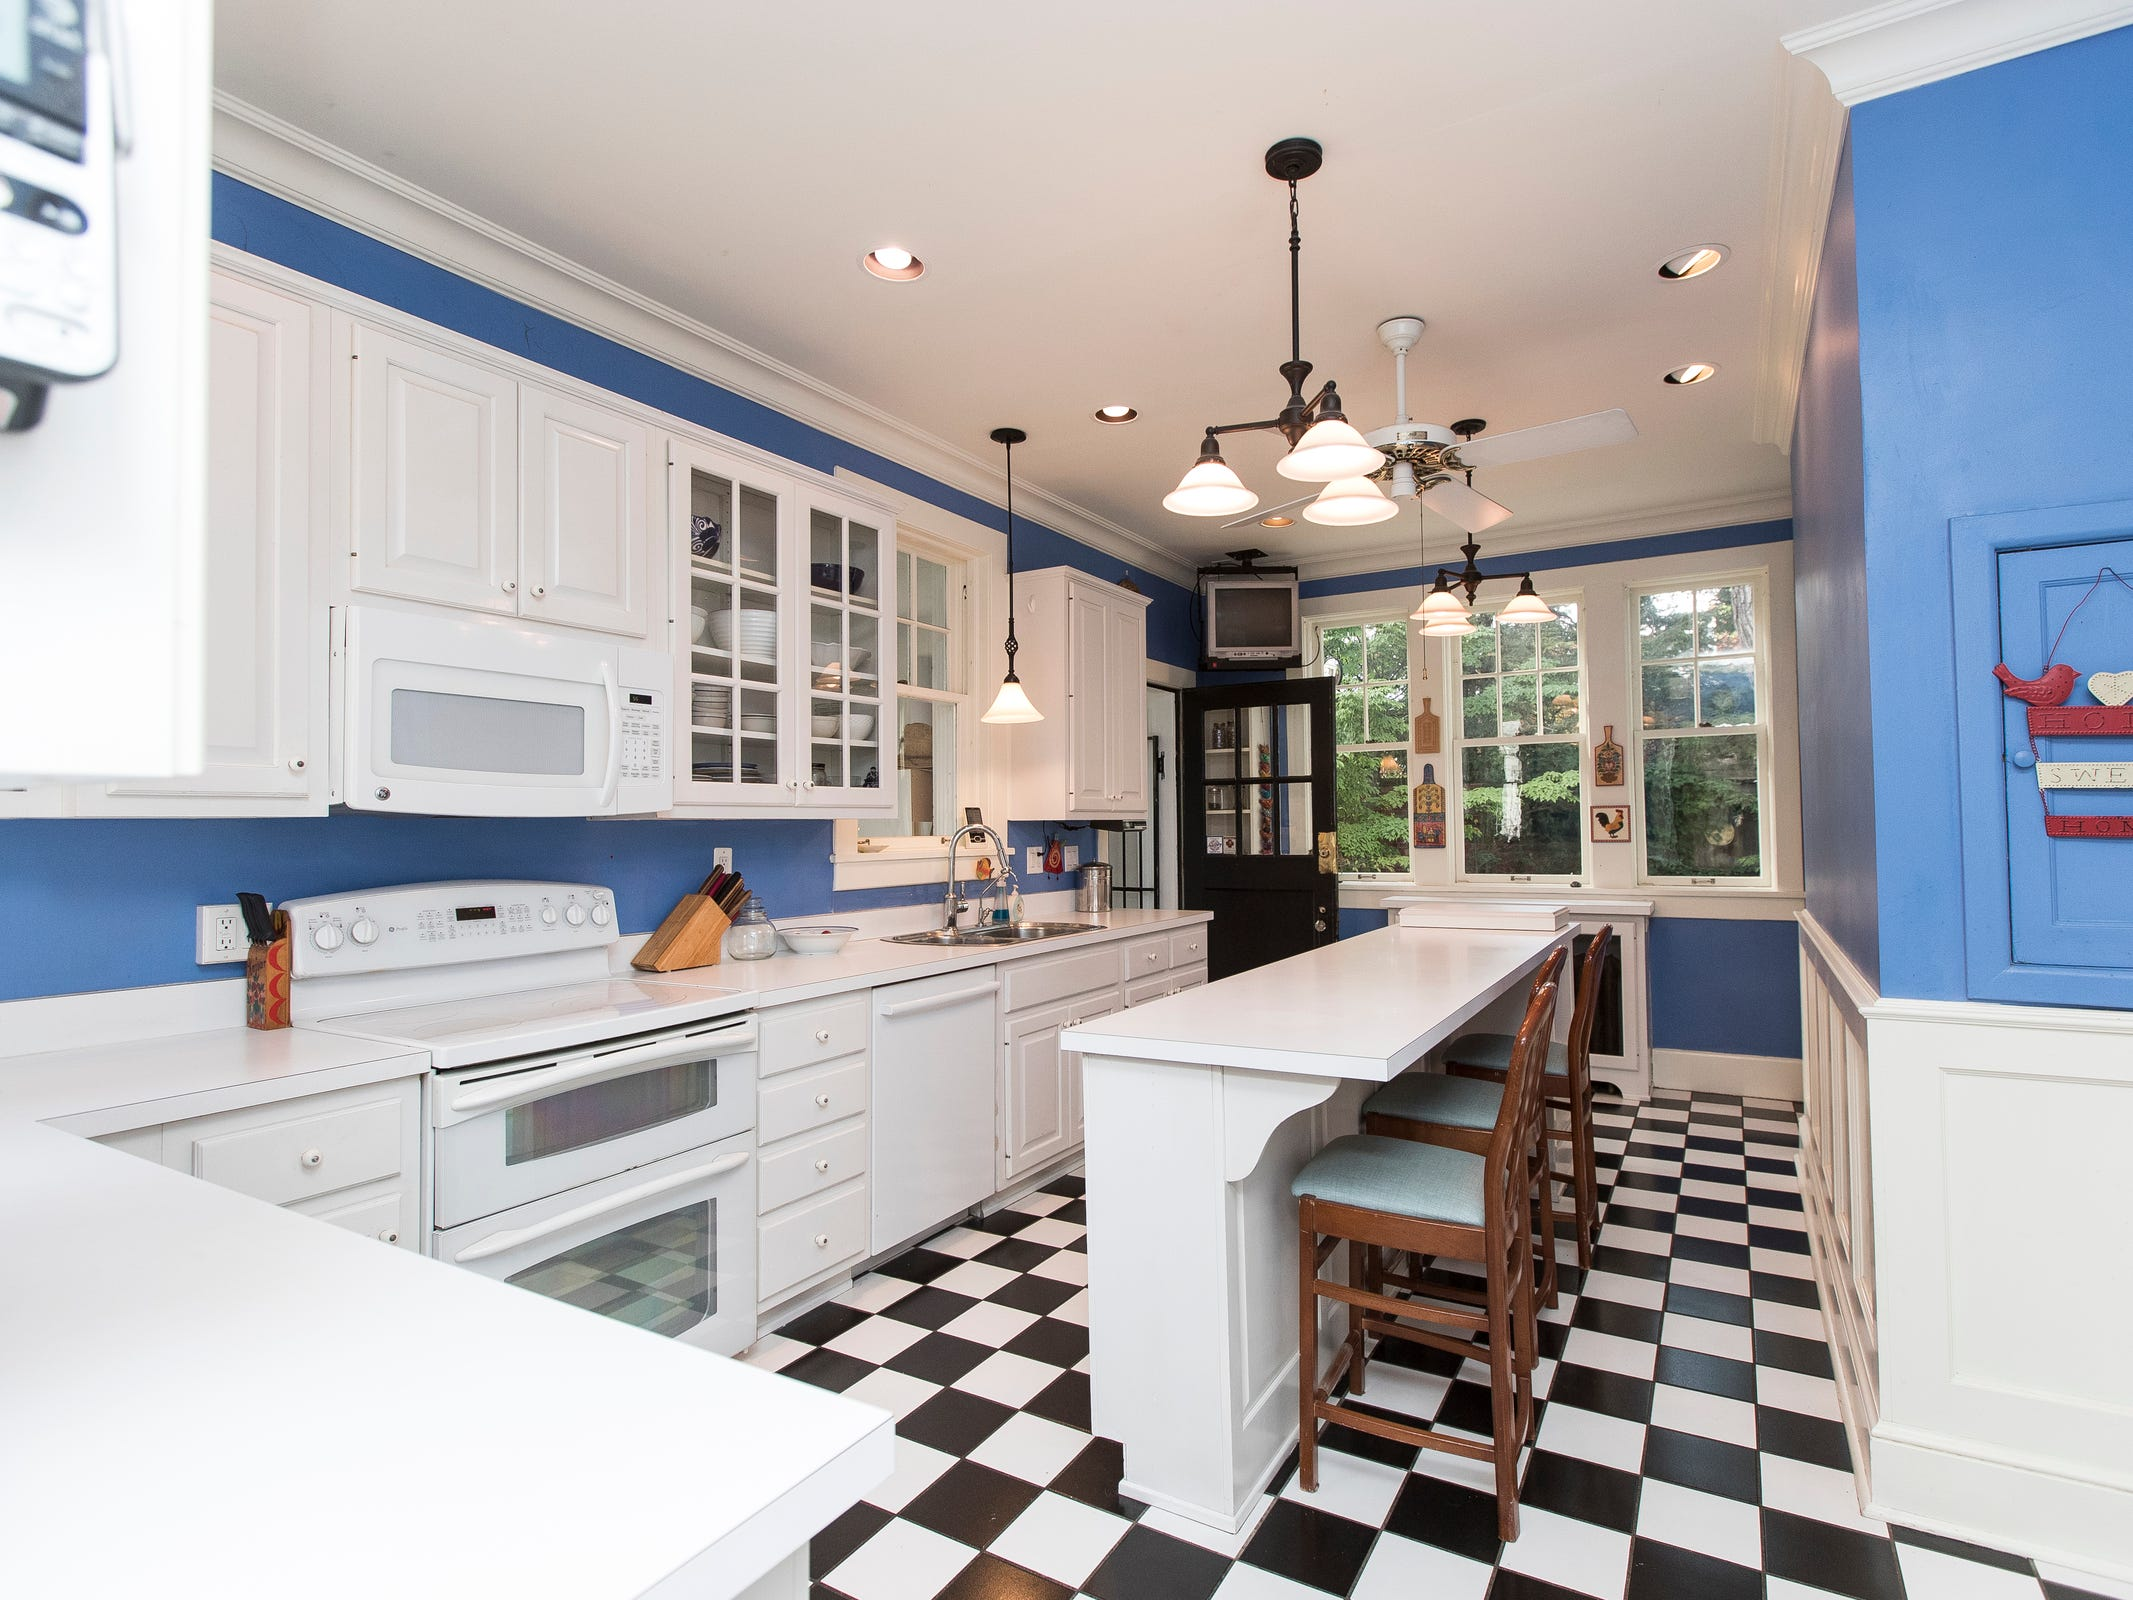 Appliances and cabinetry are new, but like most of the house, the long gallery kitchen retains its original layout.